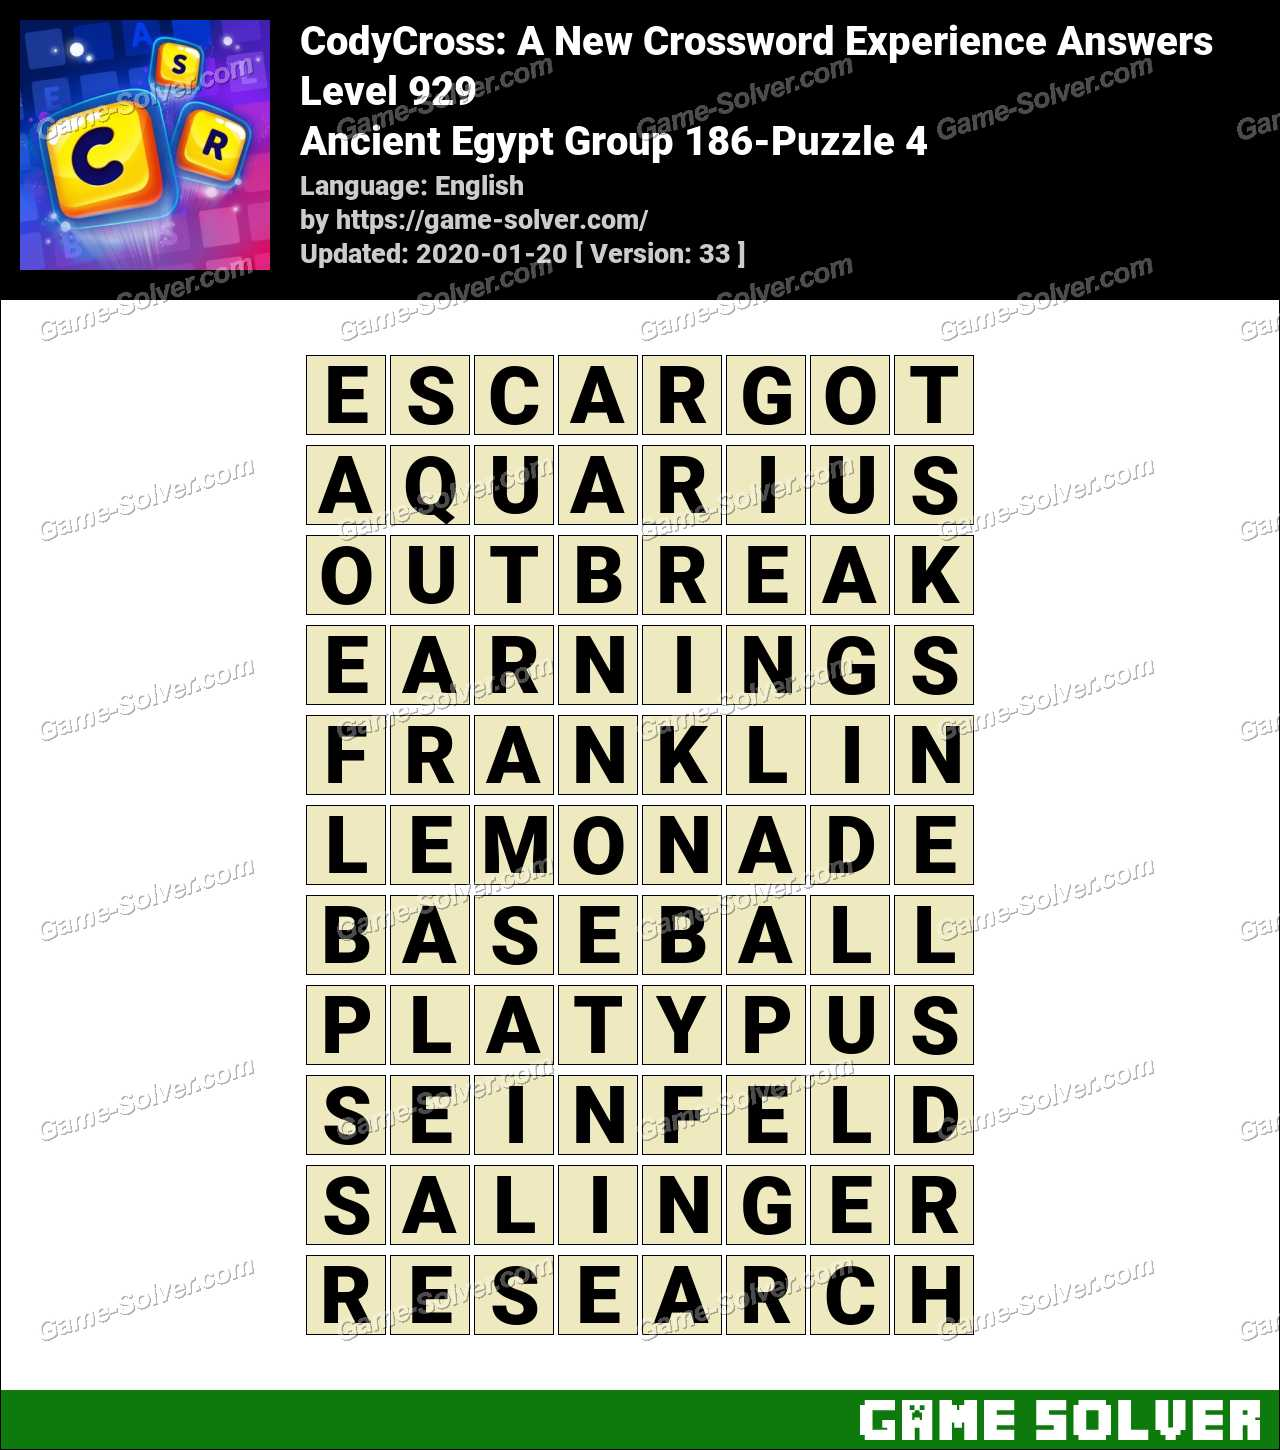 CodyCross Ancient Egypt Group 186-Puzzle 4 Answers